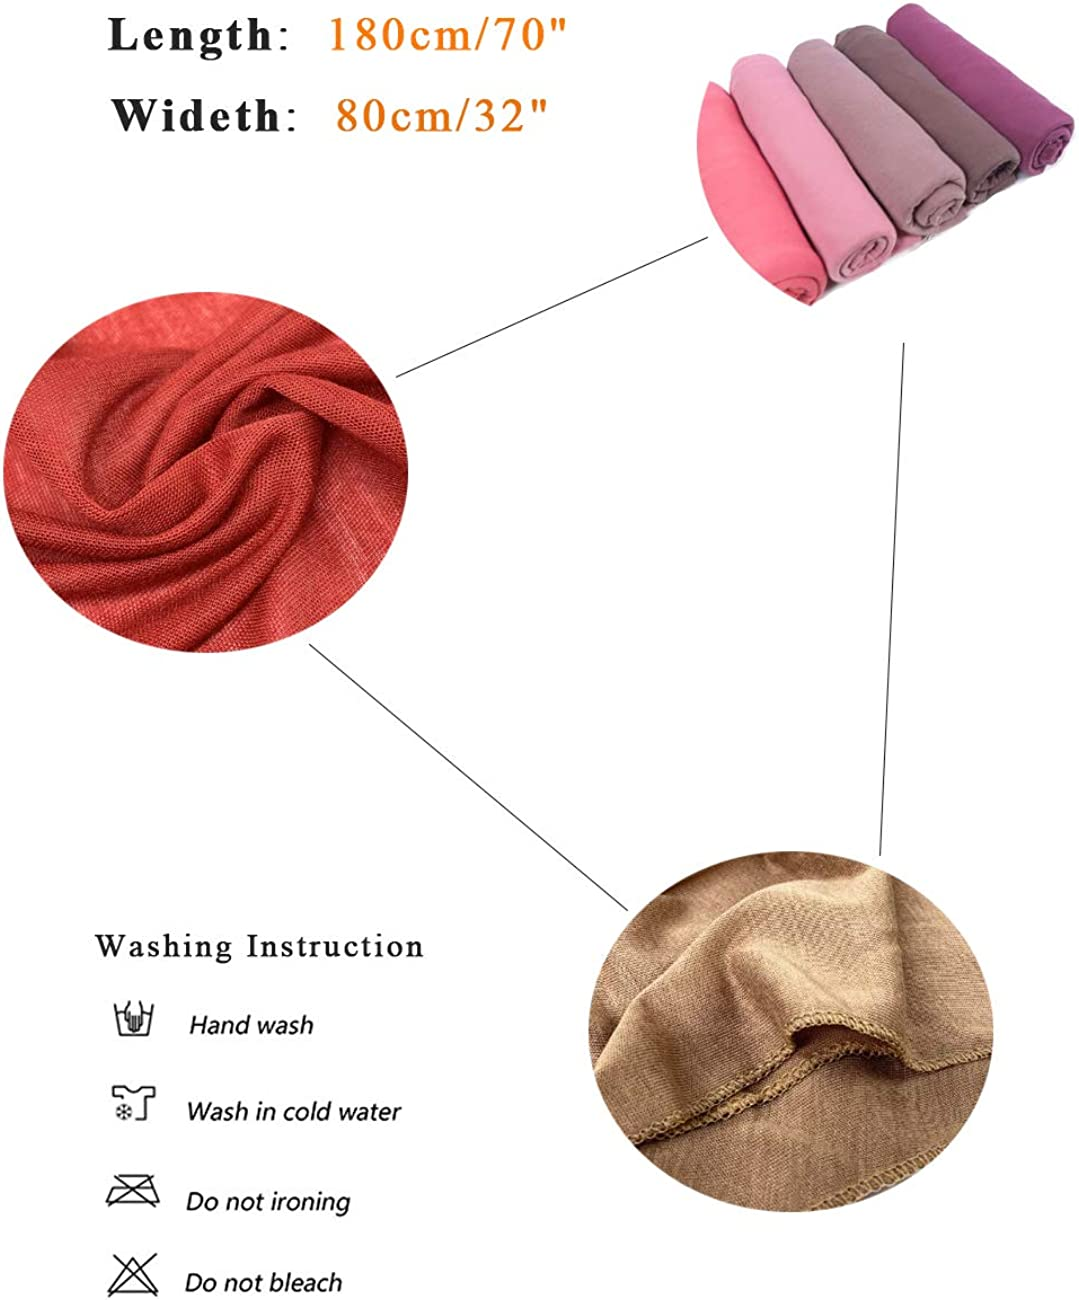 Womens Long Lightweight Jersey Headwrap Turban Headscarf Cotton Full Hair Cover Wrap